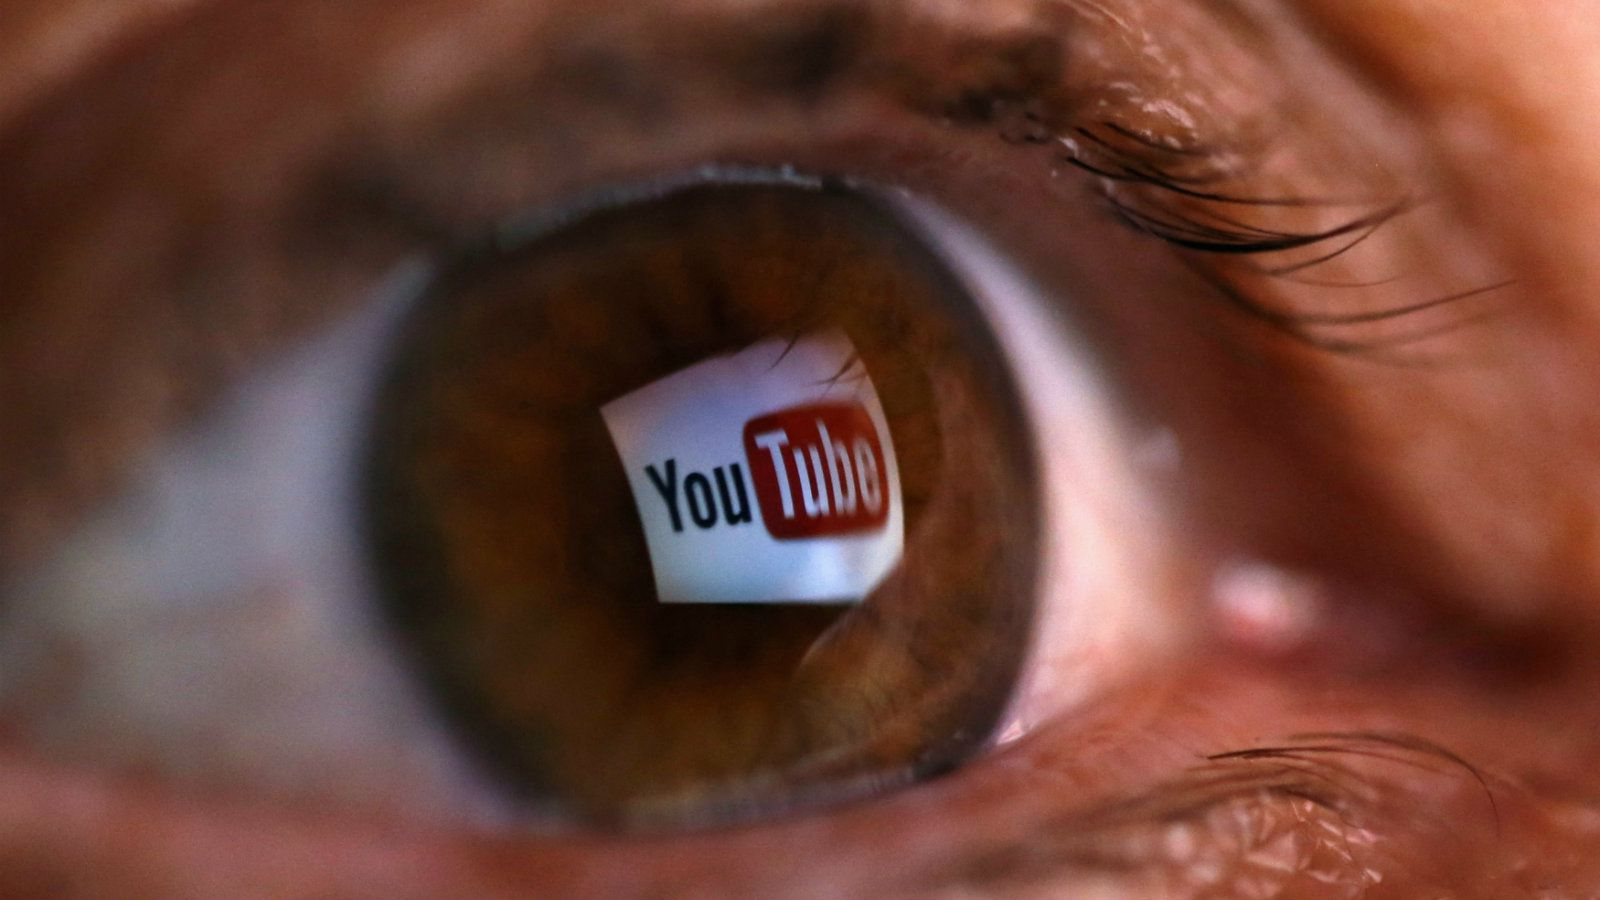 Child-predator videos cap a troubling year on YouTube — Quartz